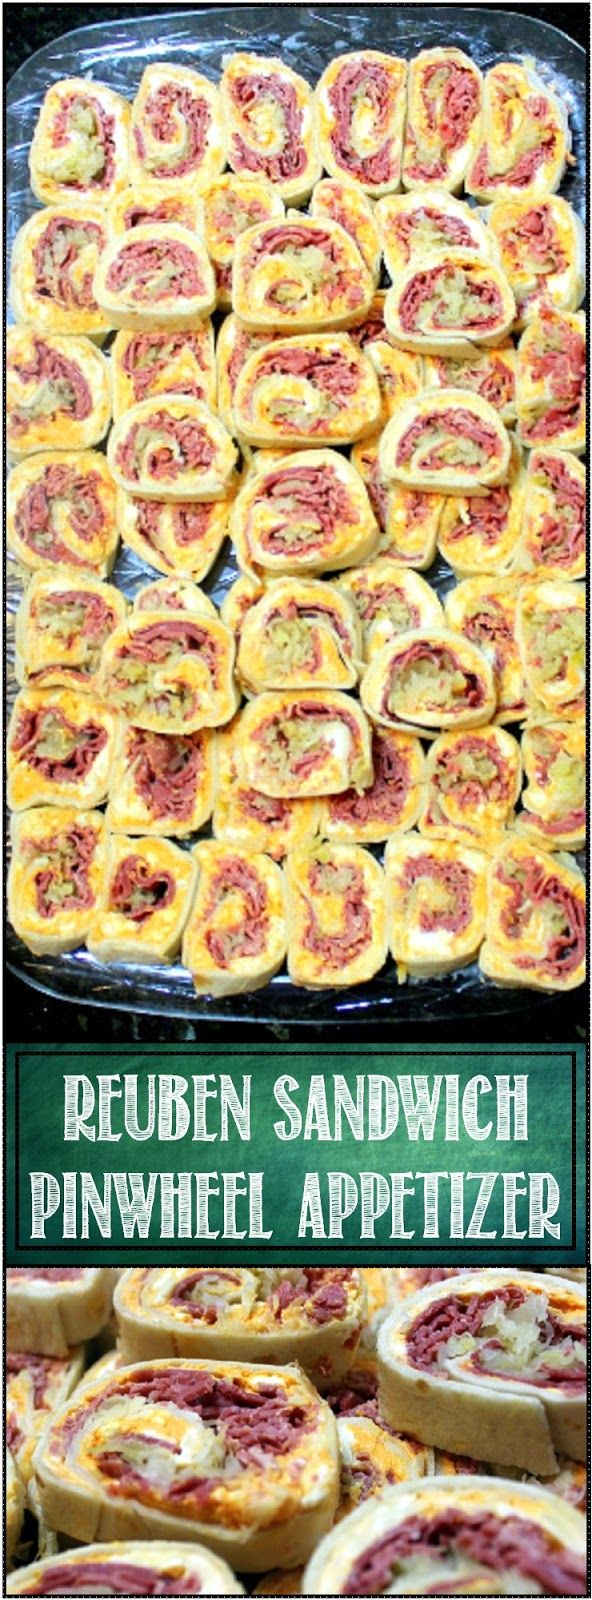 "Reuben Pinwheel Sandwich - 52 Appetizers - This is a GUARANTEED EMPTY PLATE! All the flavors of a classic Reuben sandwich (Swiss Cheese, Russian Dressing, Irish Corned Beef and German Sauerkraut in a hand held ""Just a Little Bite Appetizer. PEOPLE LOVE THESE!"